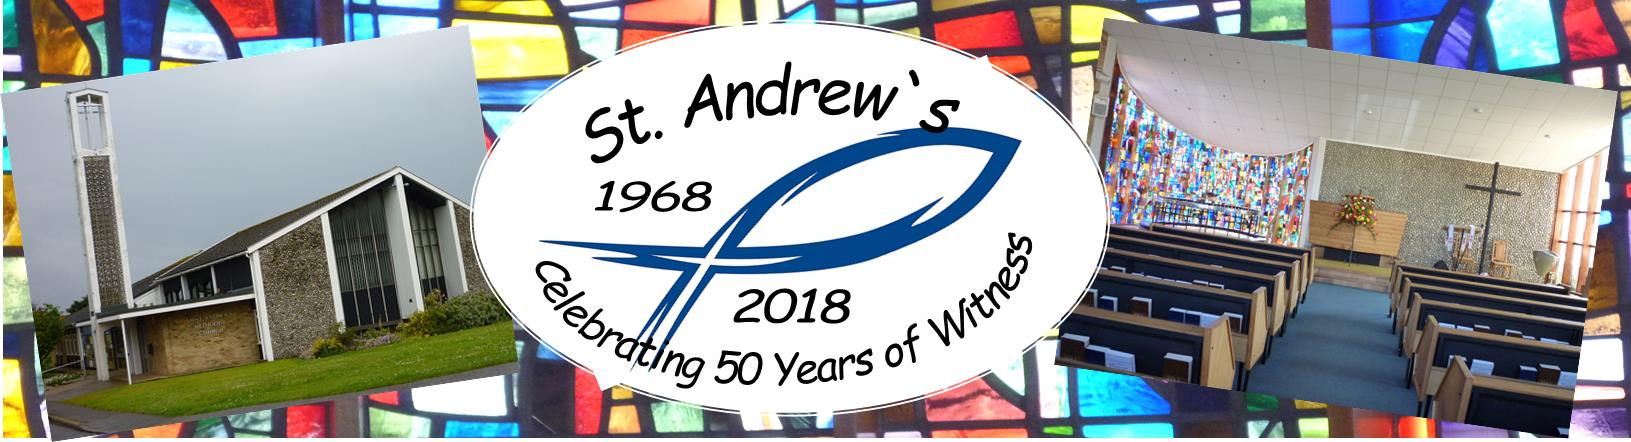 St. Andrews Anniversary header